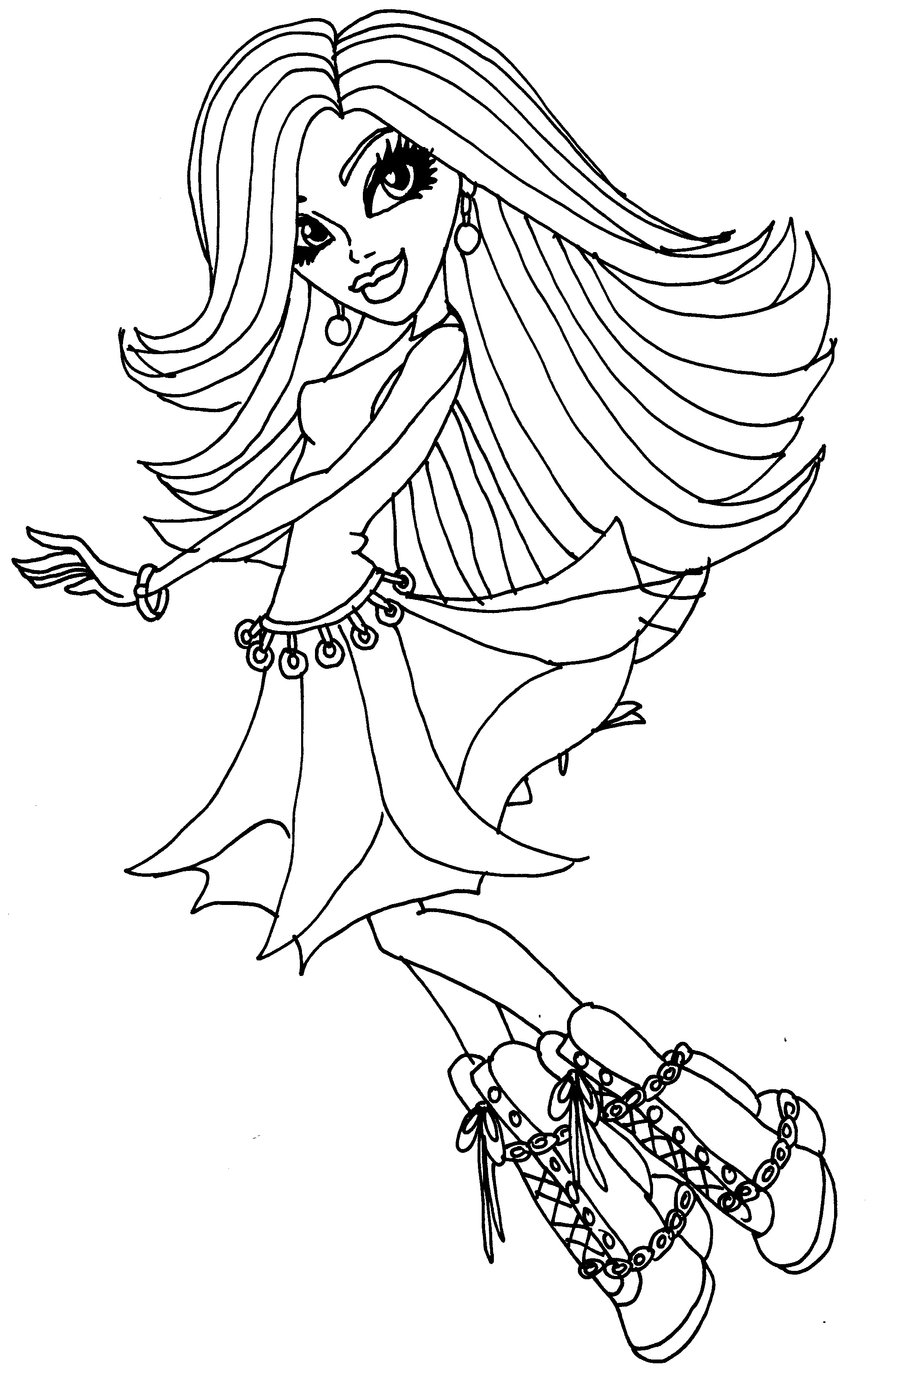 monster high halloween coloring pages - coloriage monster high spectra vondergeist imprimer